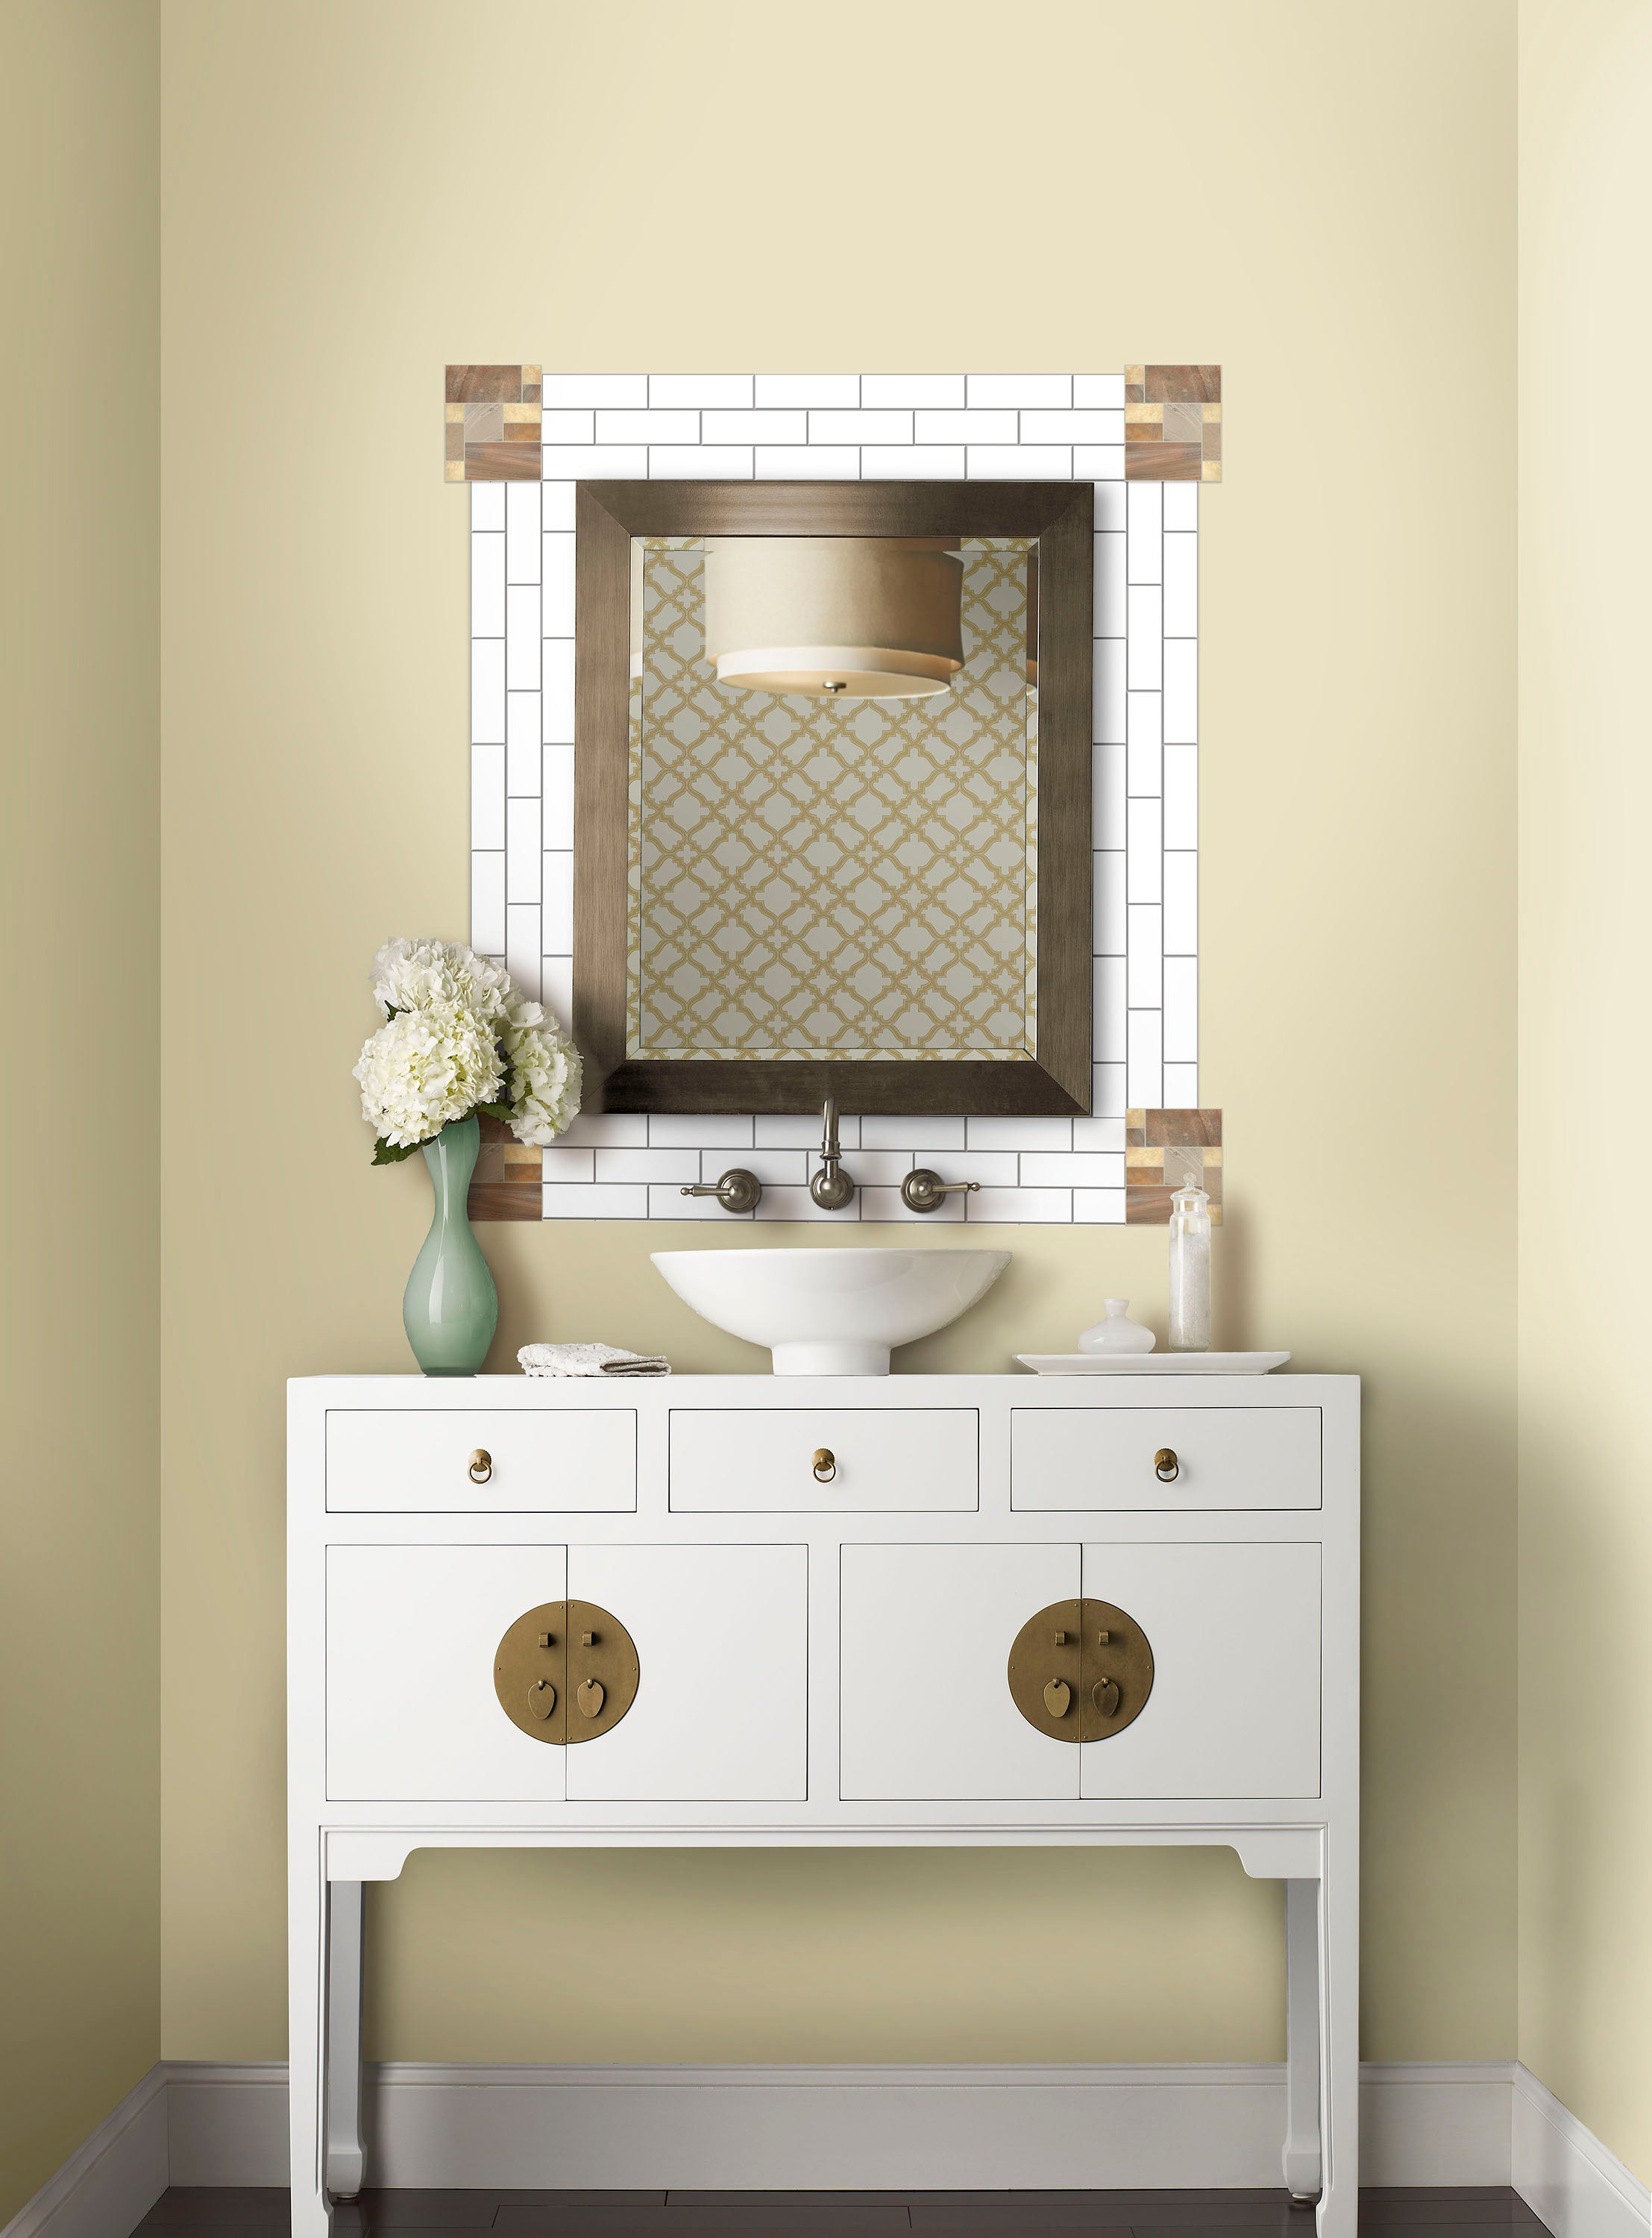 Create A Statement Look In A Bathroom With Sticktiles